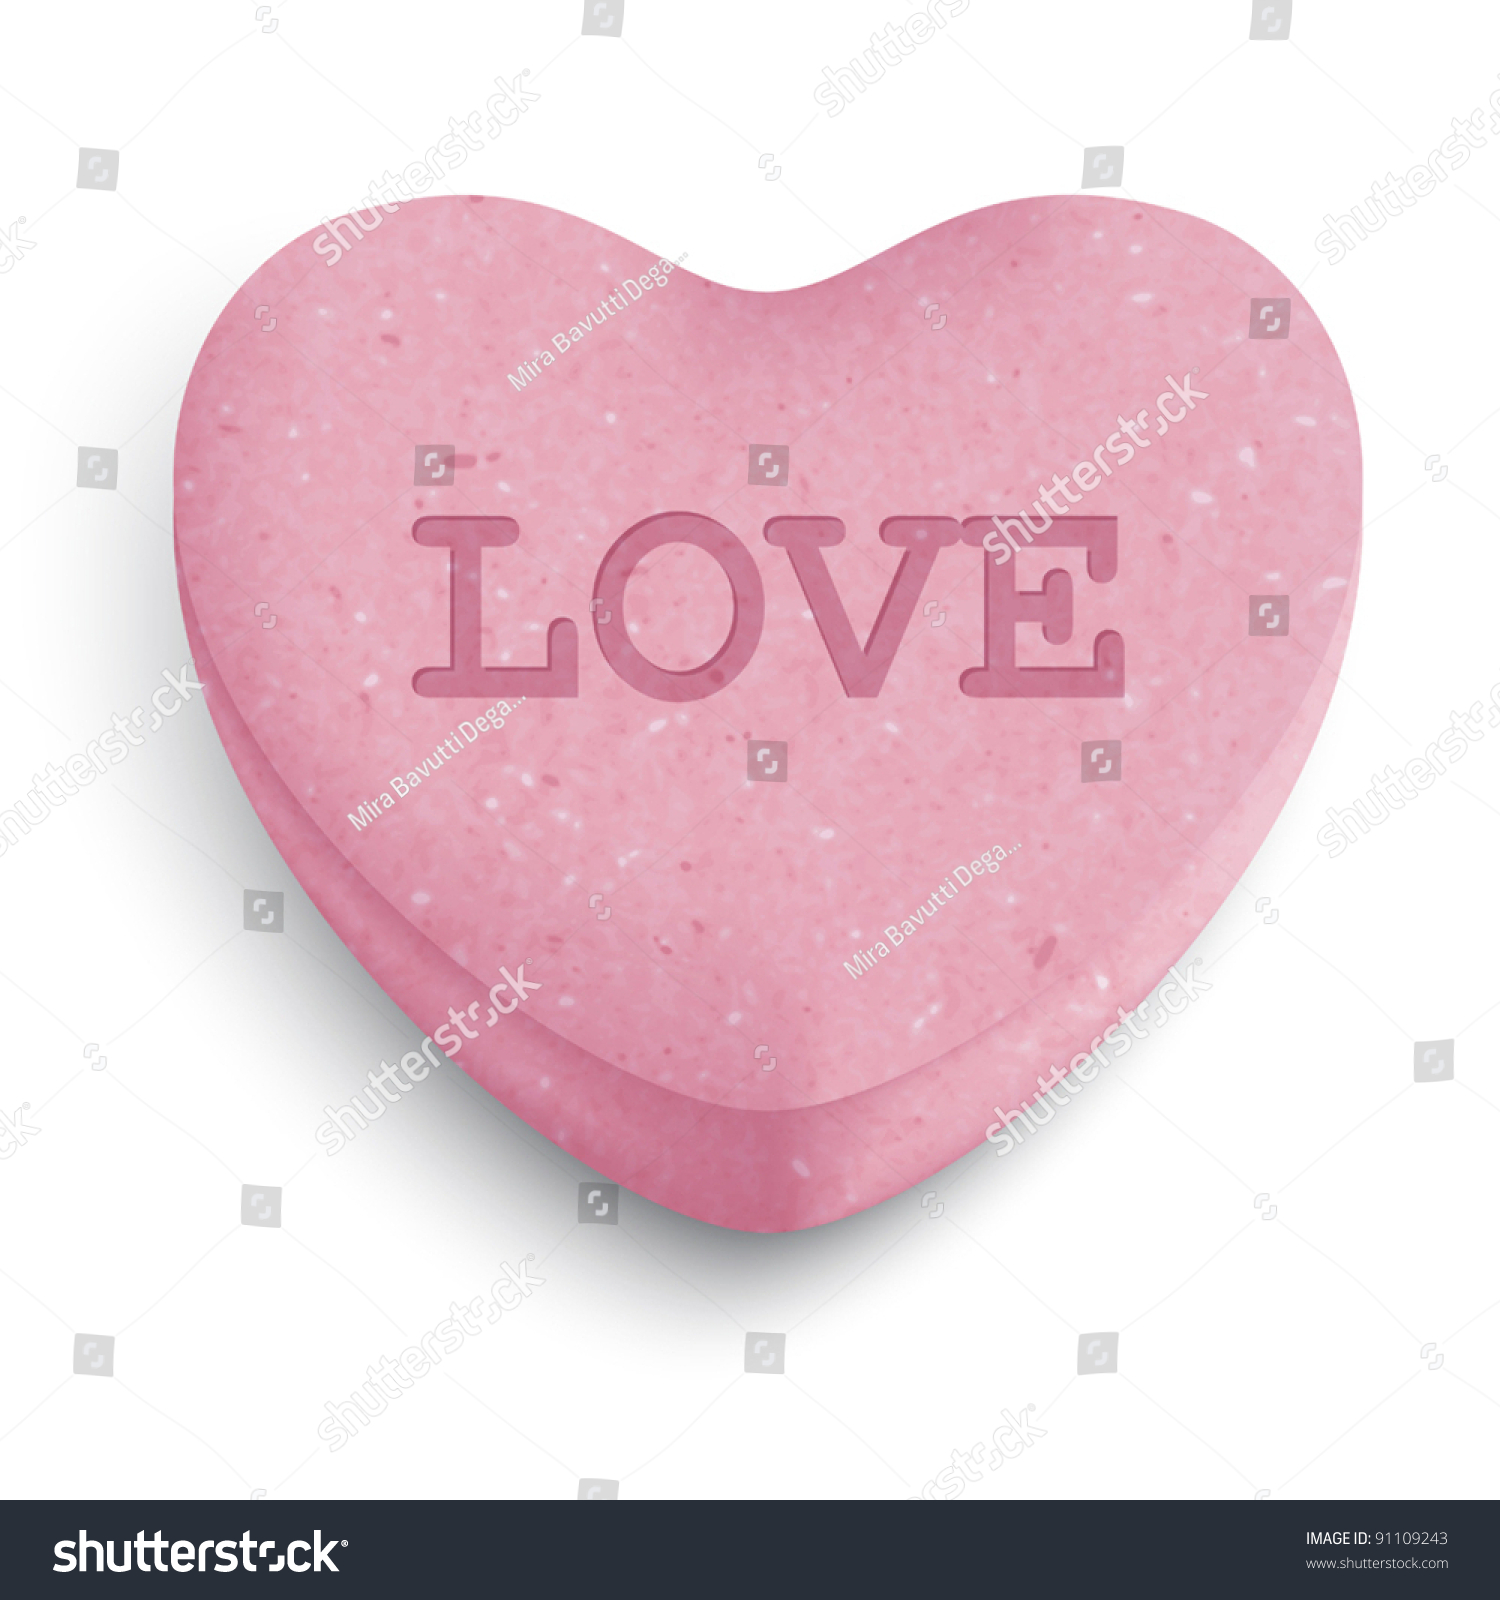 pink sugar heart candy love word stock vector hd (royalty free